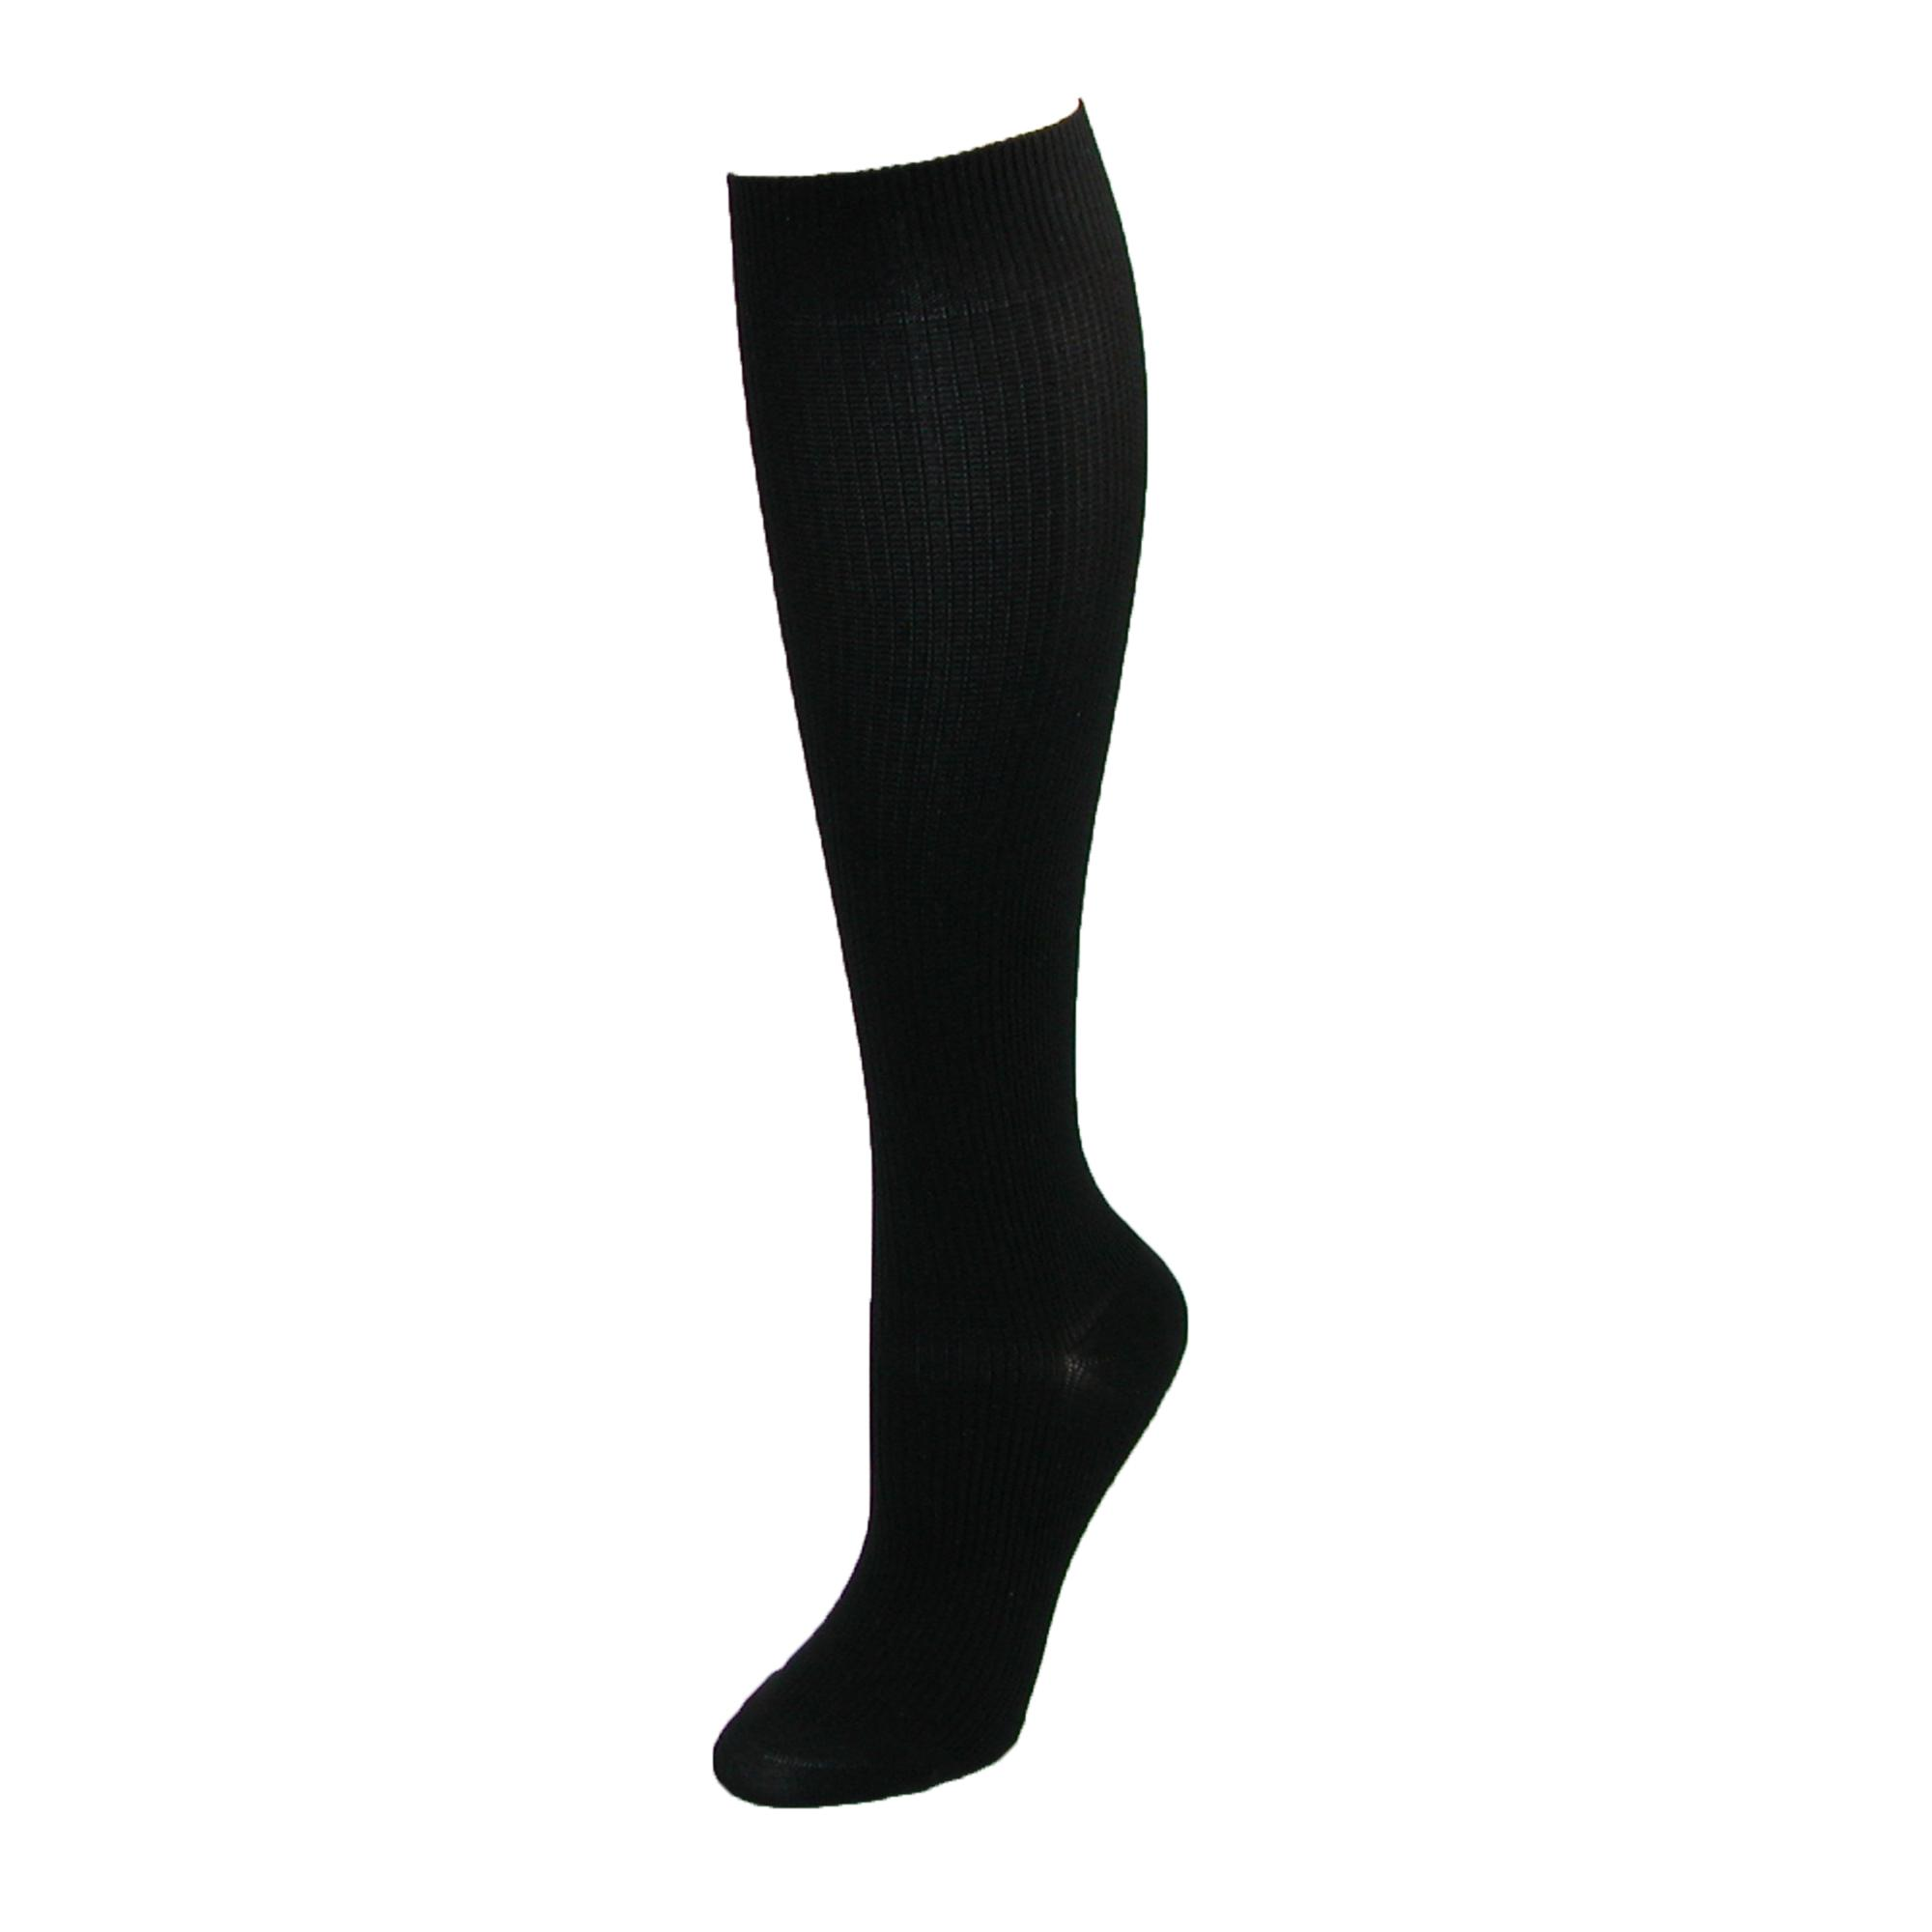 Think Medical Womens Plus Size Compression Socks Knee Highs